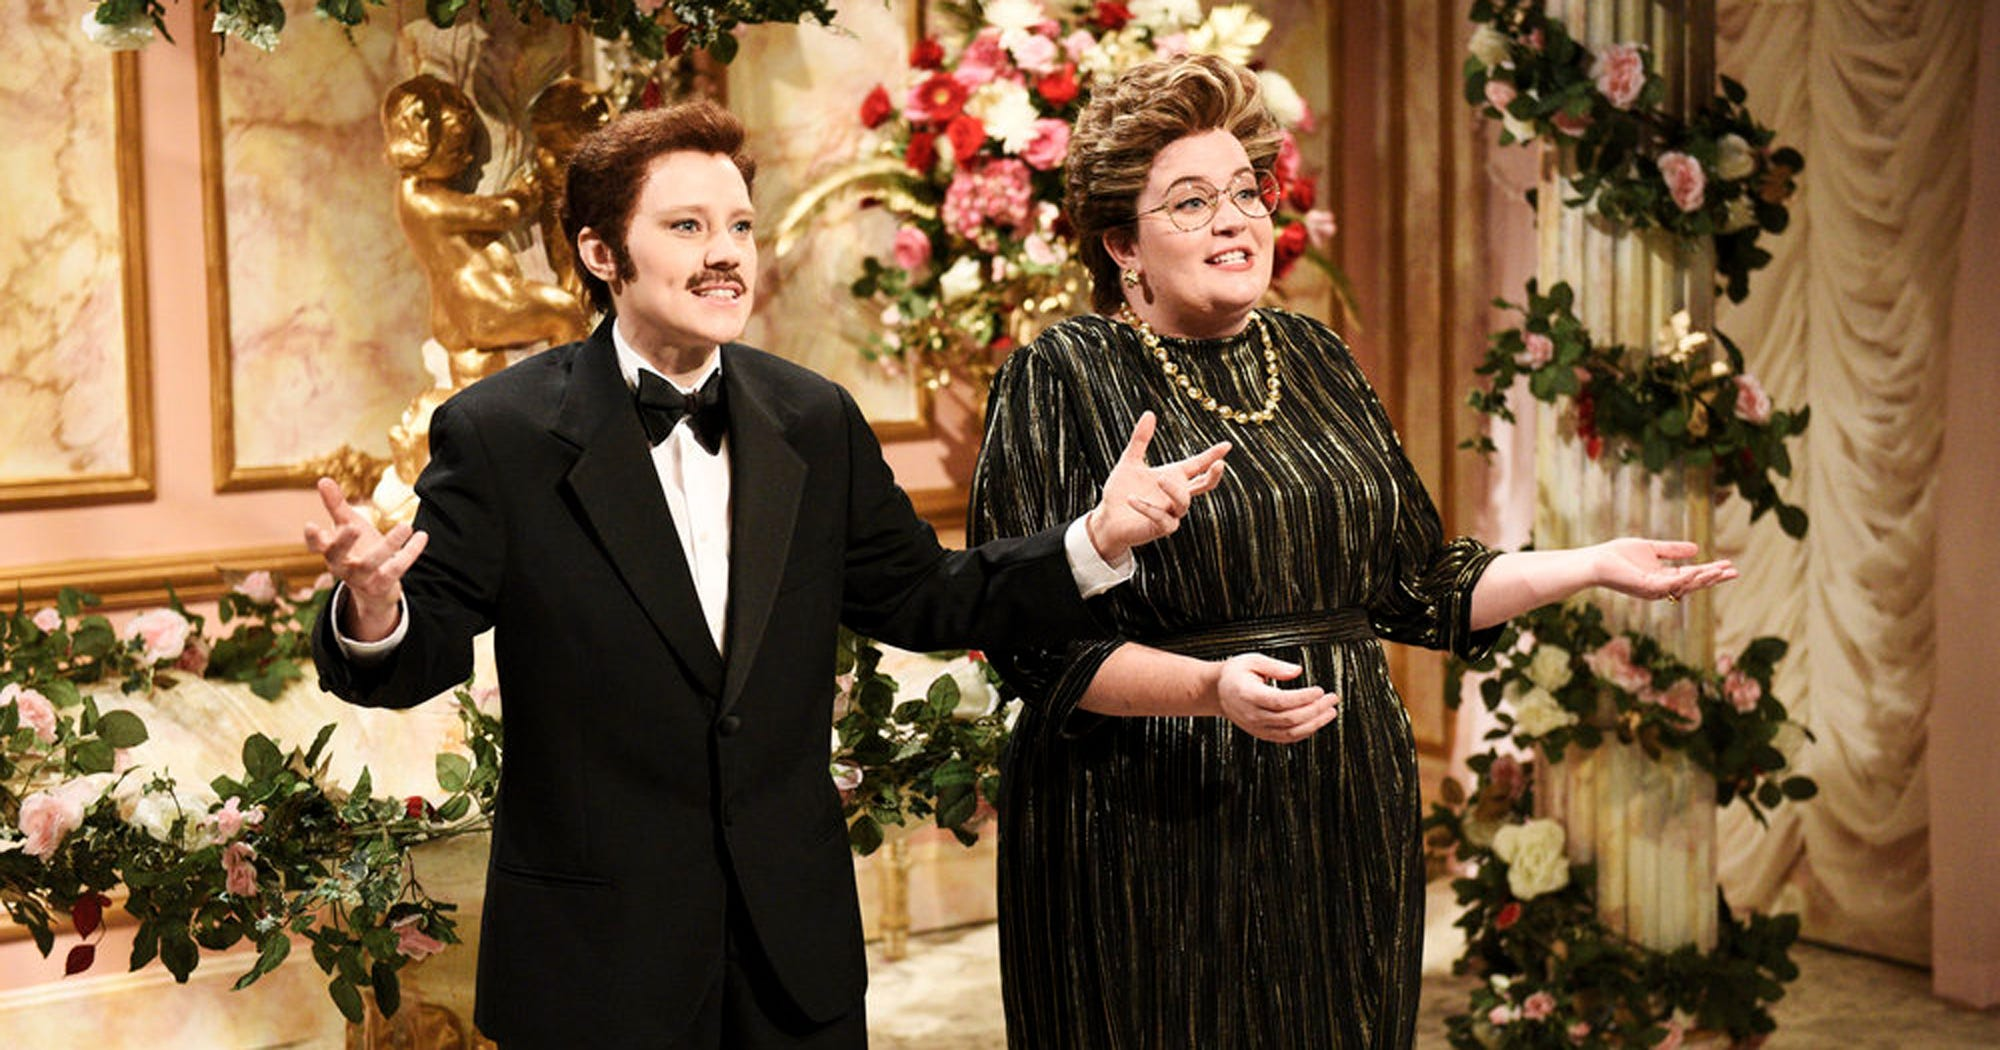 Hey SNL, What Do We Have To Do To Get More Of Kate McKinnon & Aidy Bryant?